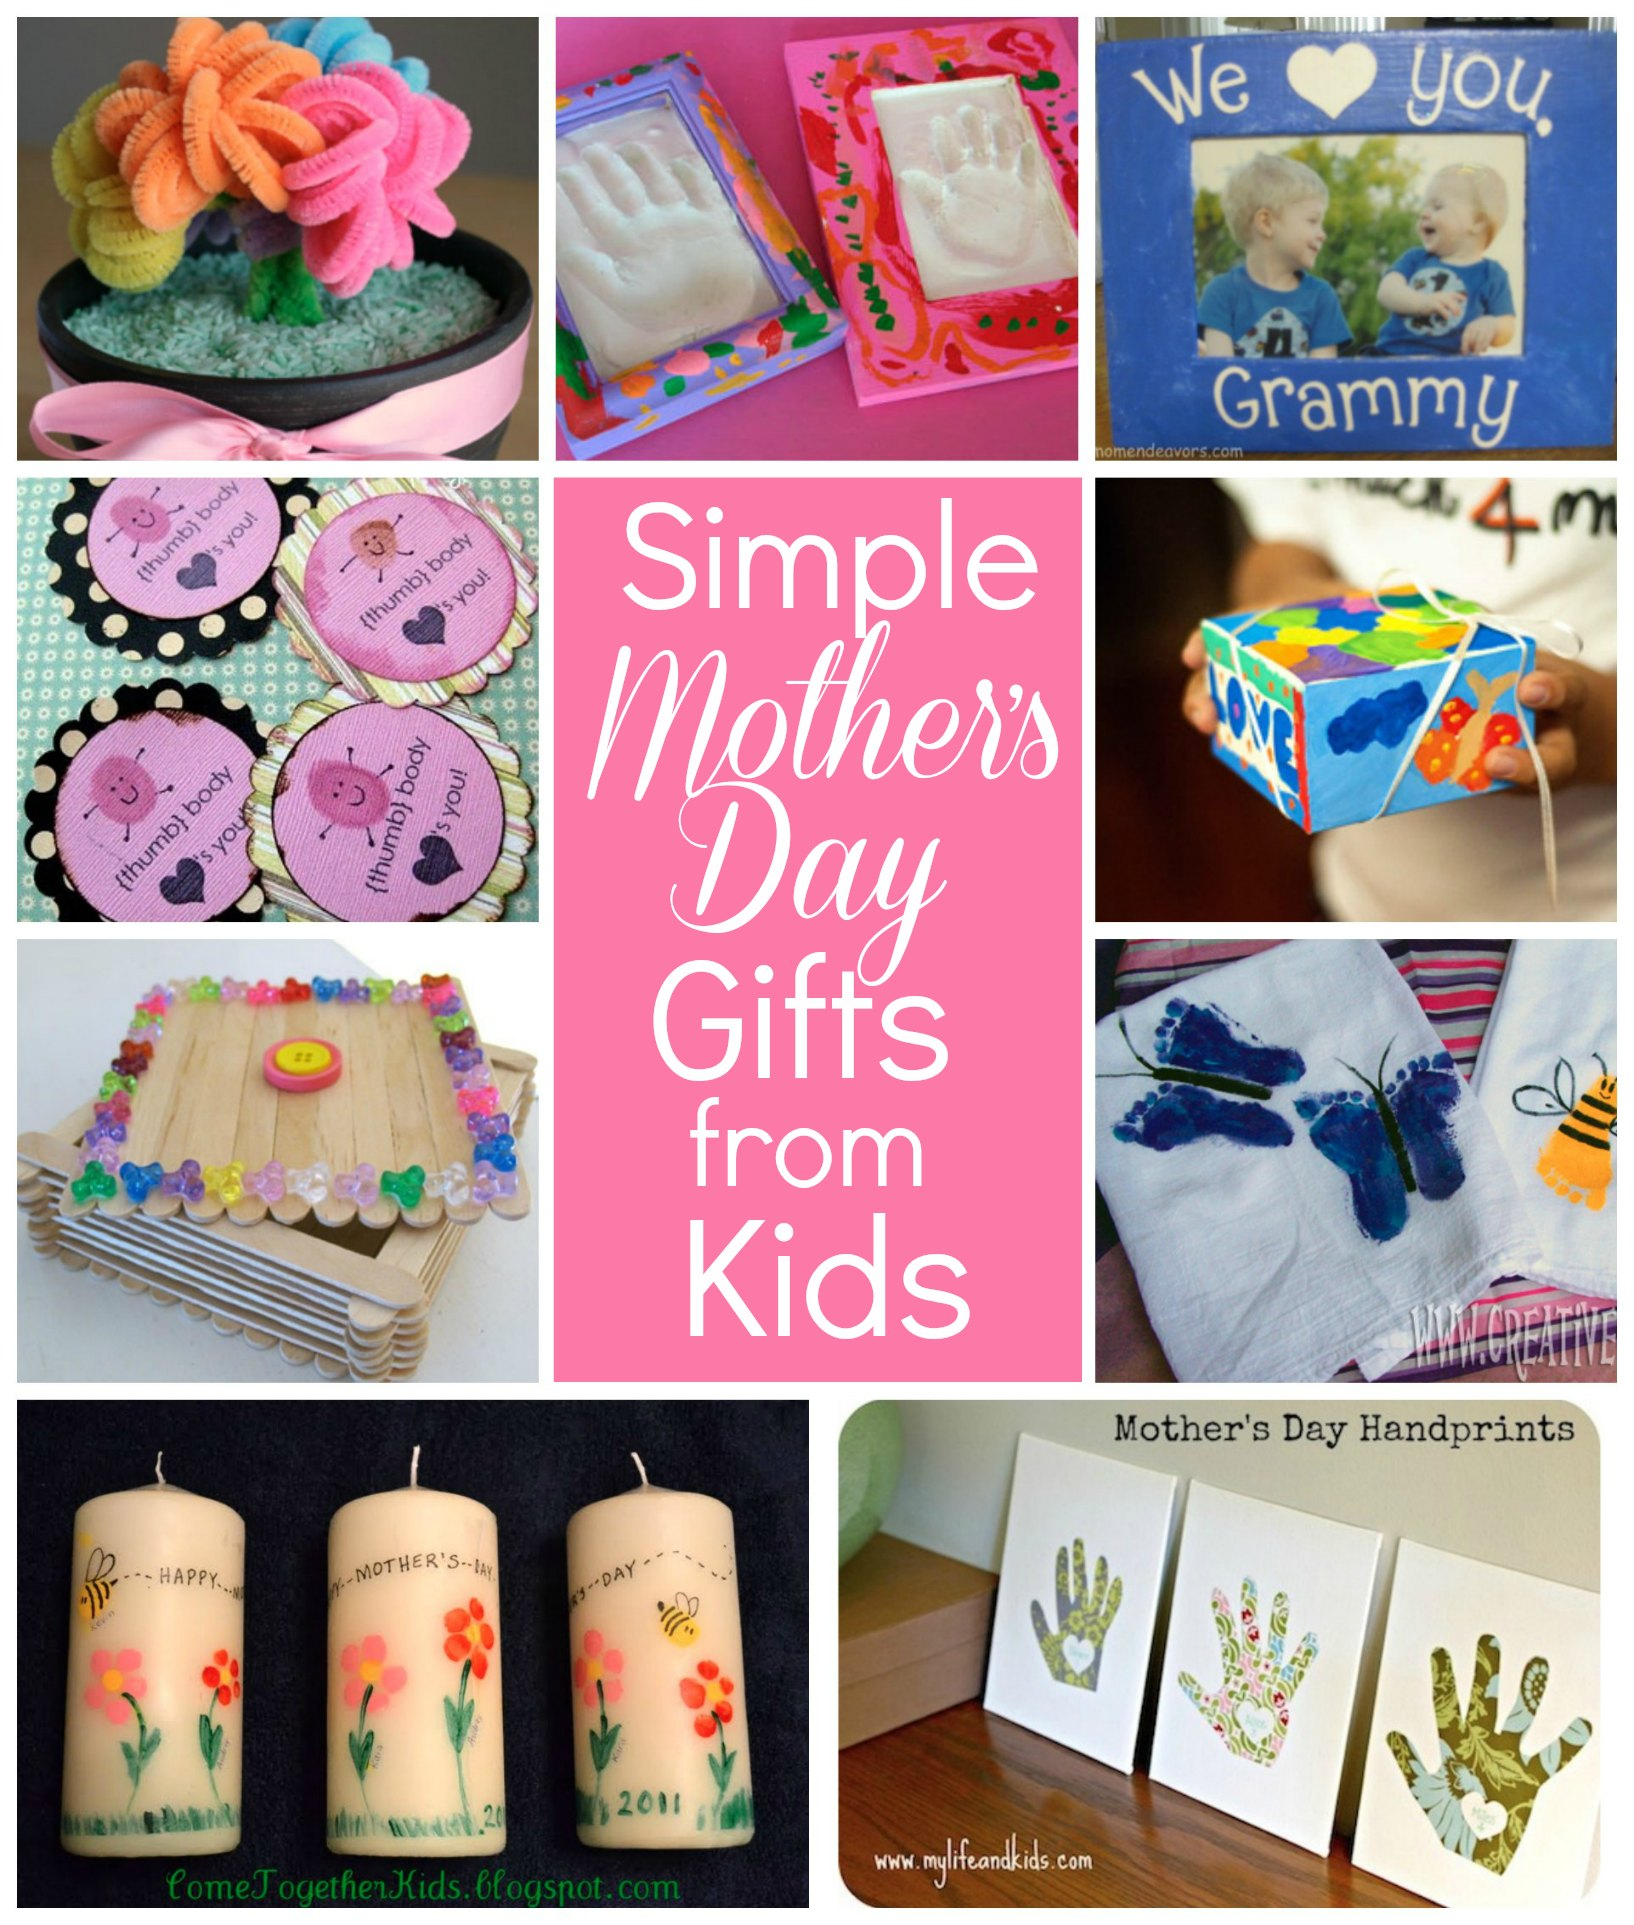 Simple mothers day gift ideas for grandma flower pot photo flowers mothers day crafts negle